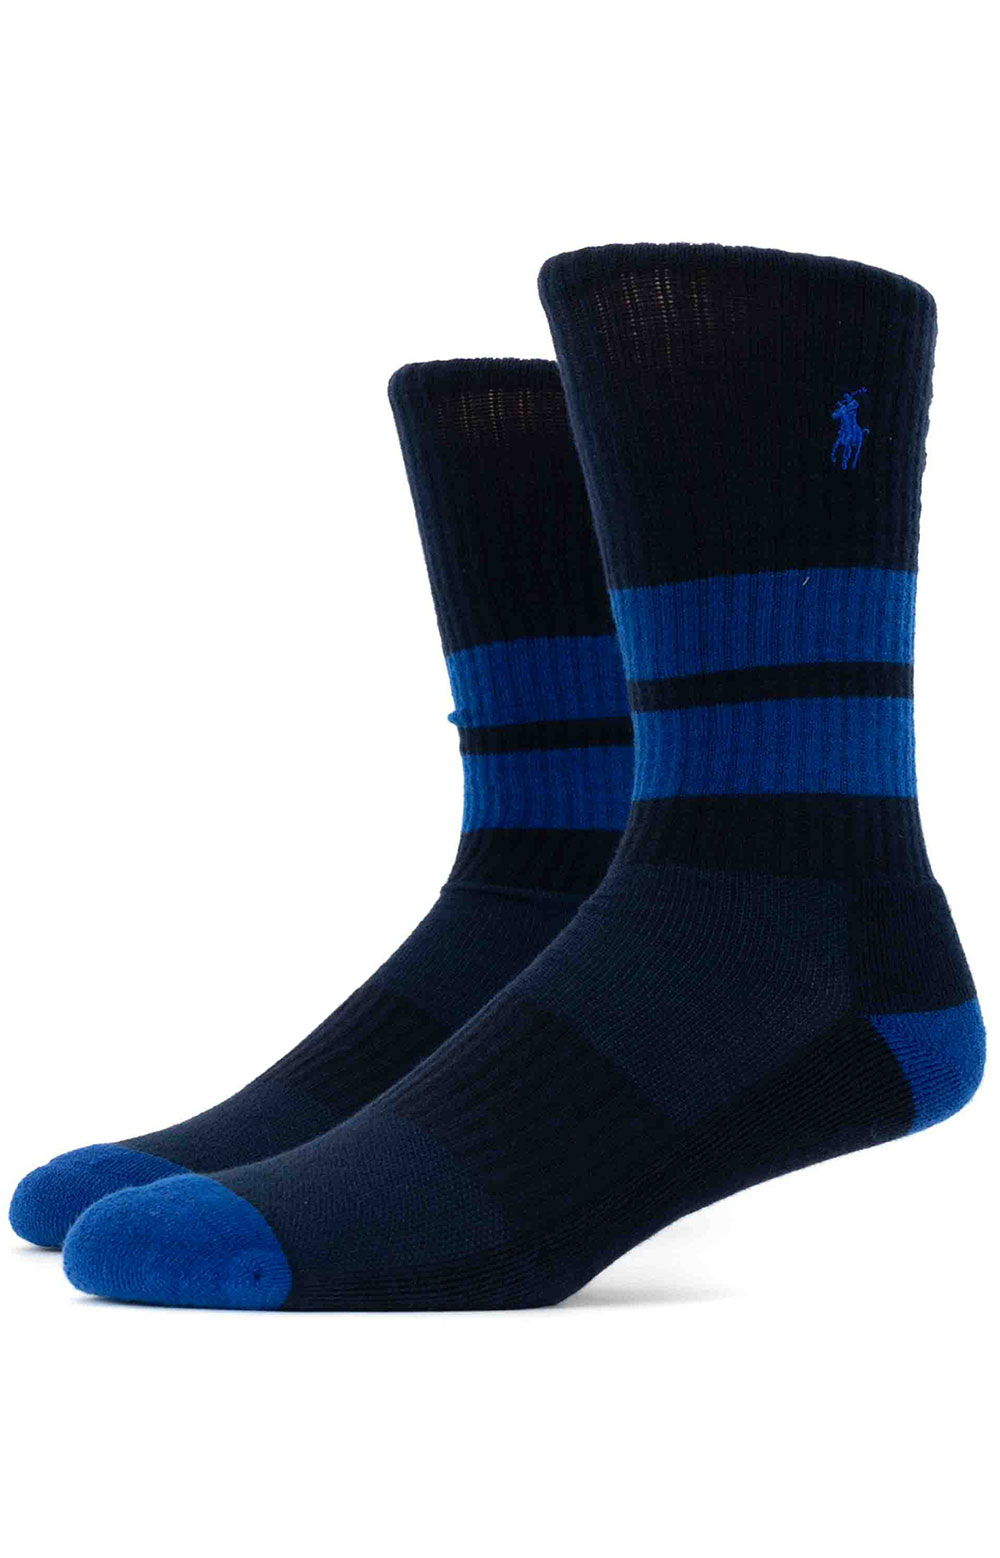 Colorblock Cushioned Crew Socks - 6 Pack 4